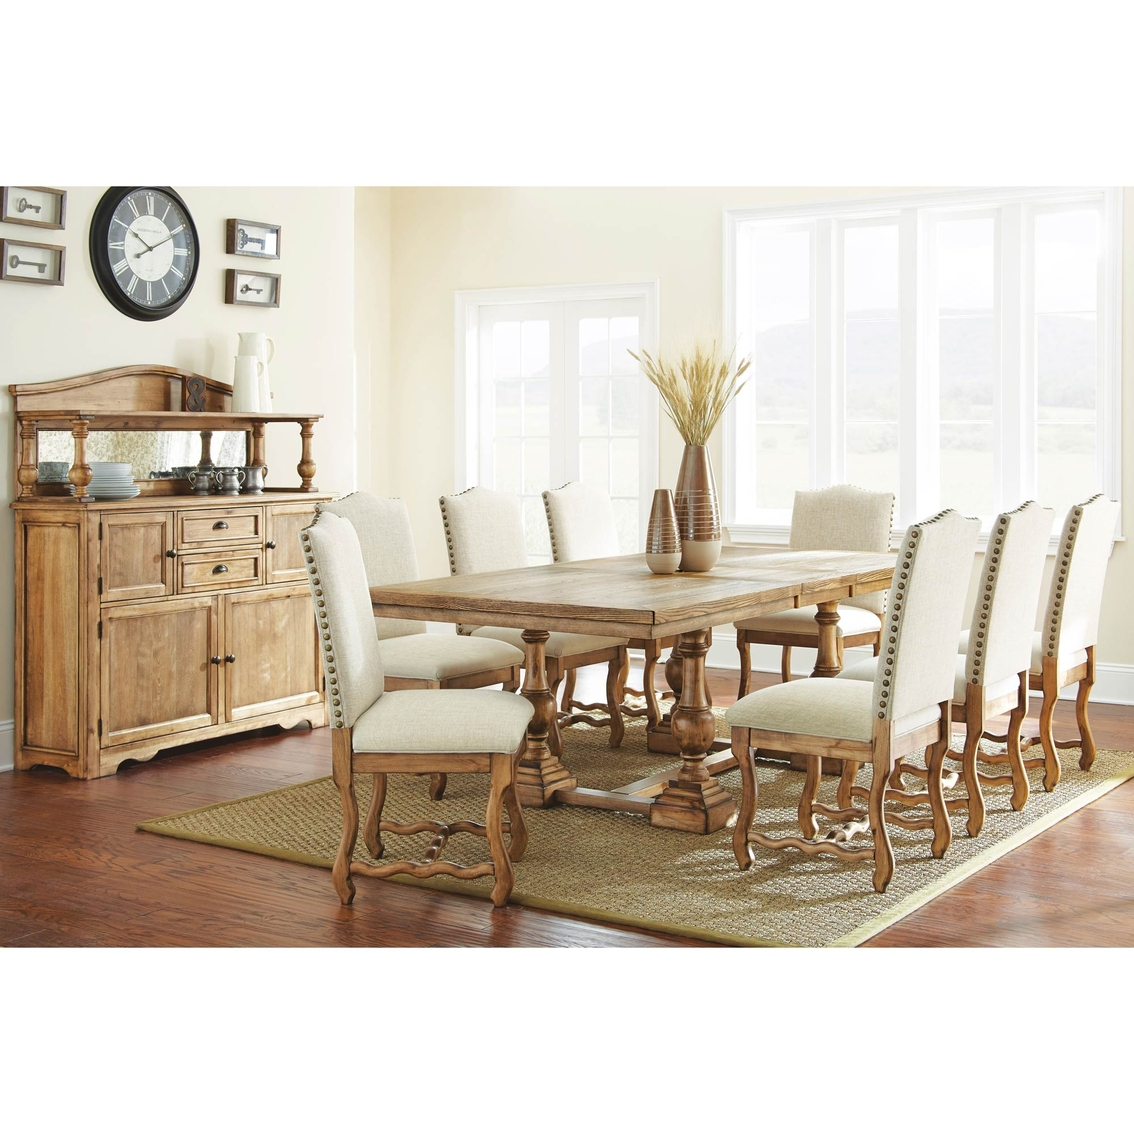 Plymouth Furniture Clearance Steve Silver Plymouth Dining Table Tables Home